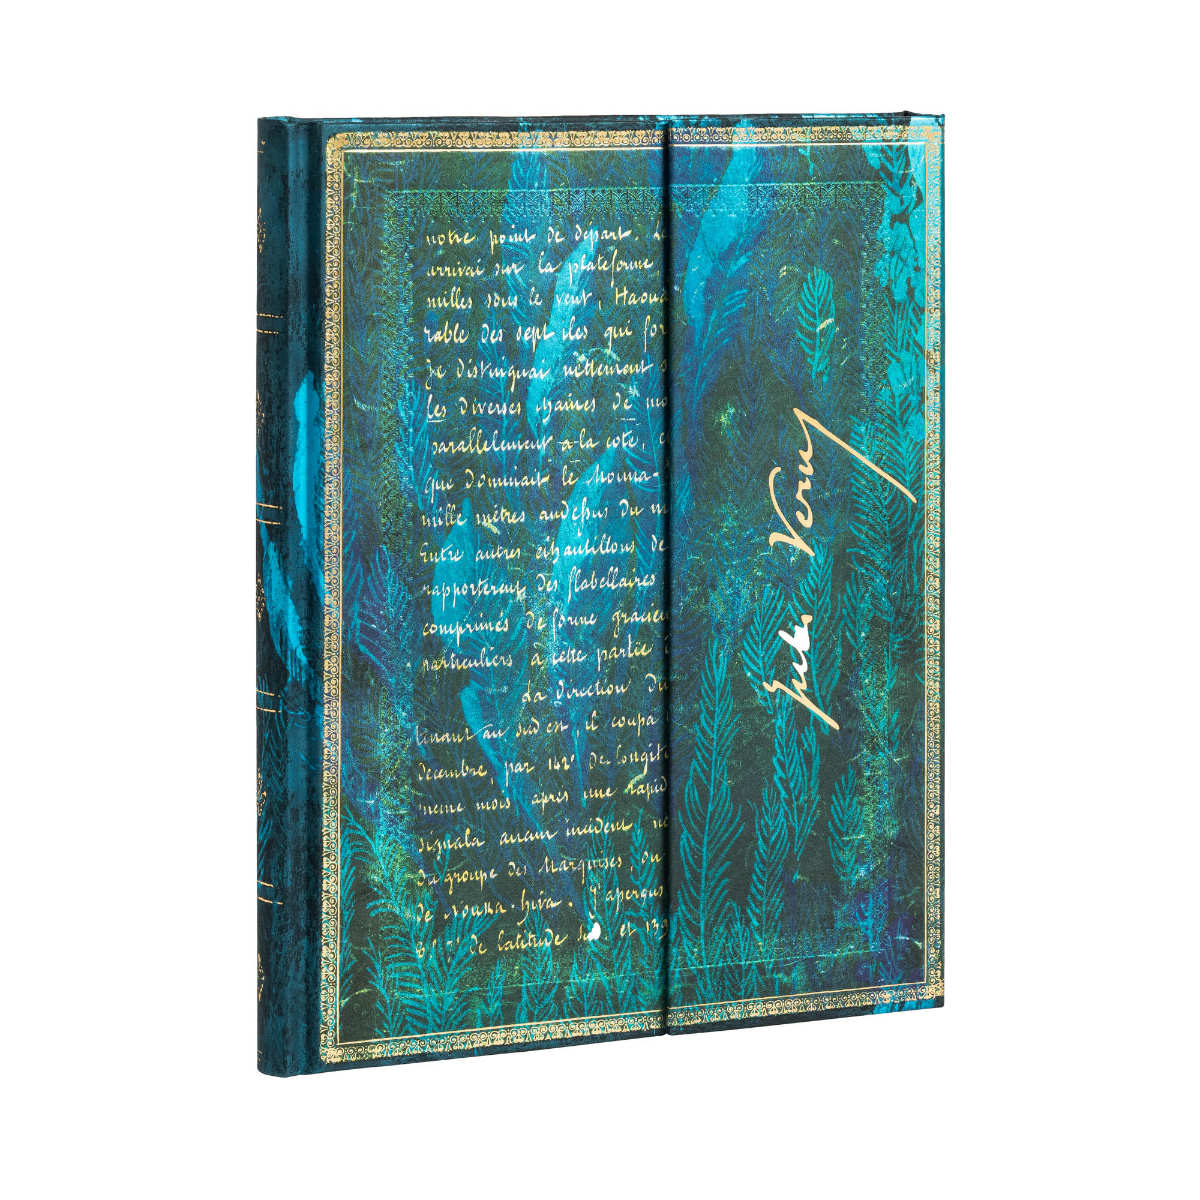 Paperblanks Verne Twenty Thousand Leagues Ultra 7x9 Inch